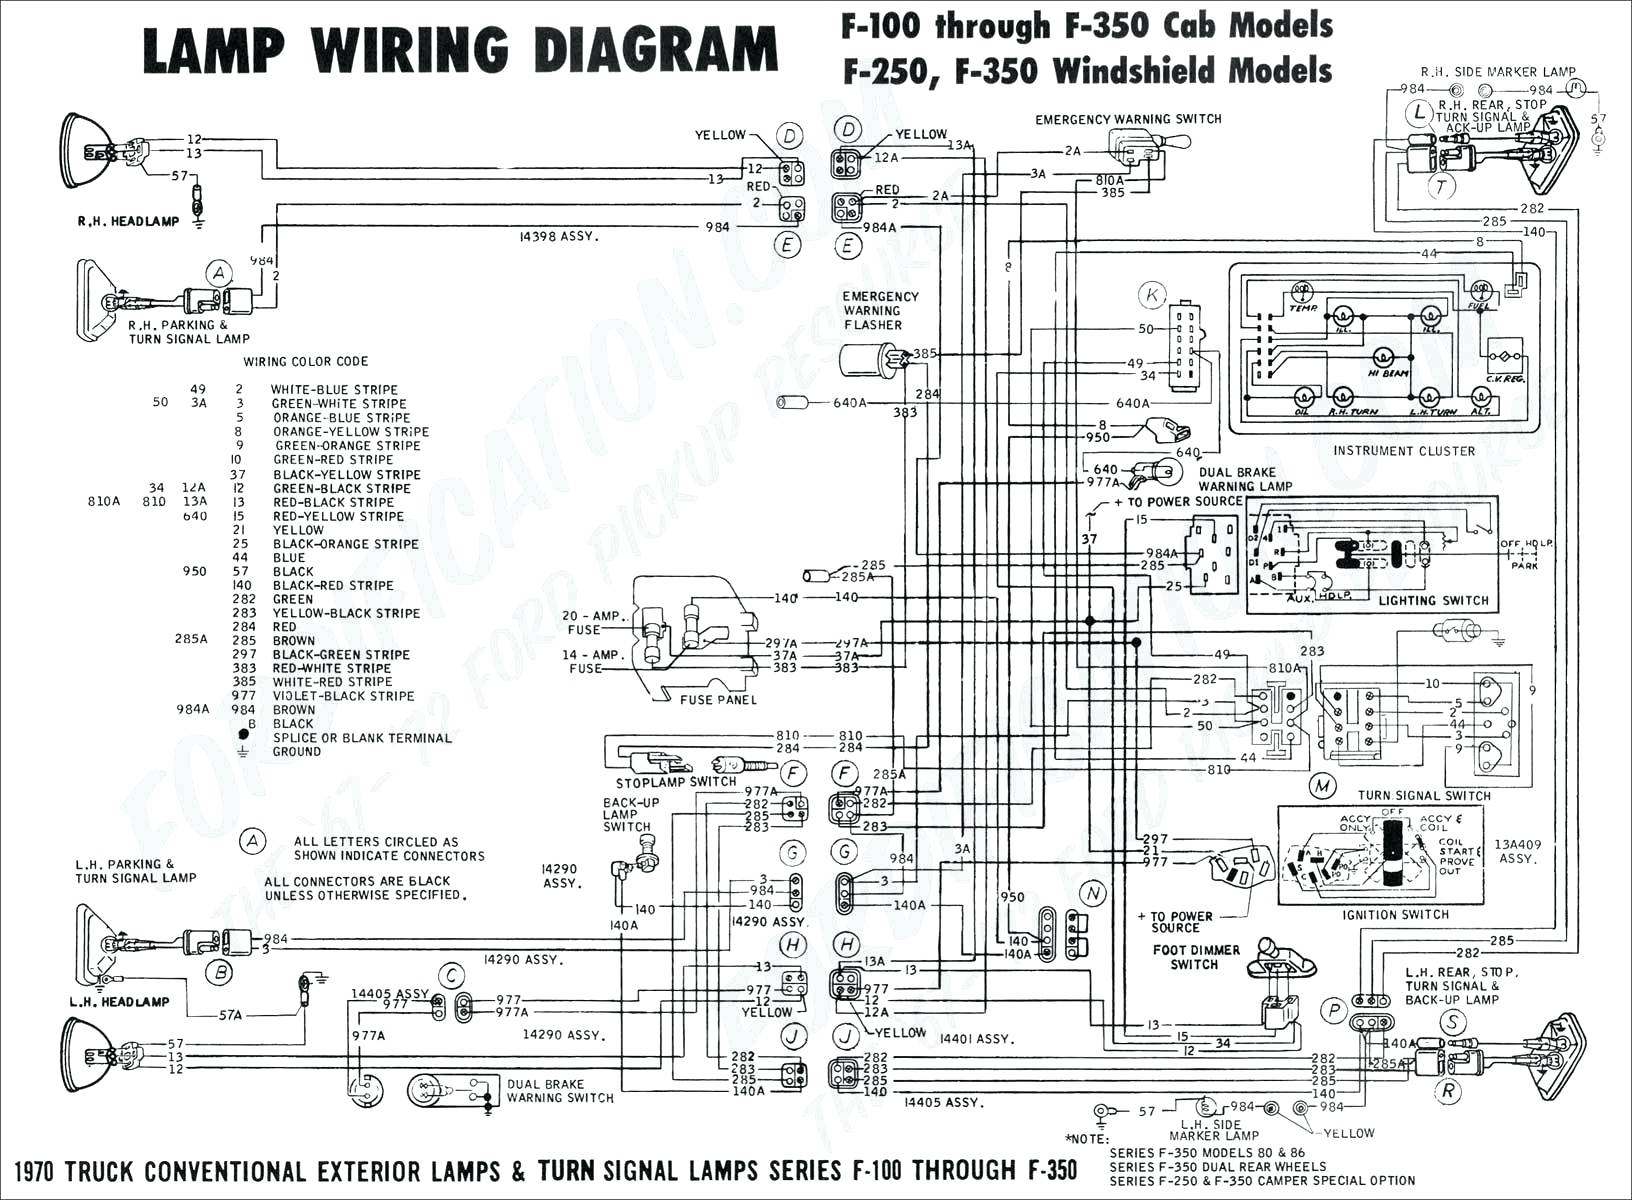 98 dodge ram trailer wiring diagram download. Black Bedroom Furniture Sets. Home Design Ideas